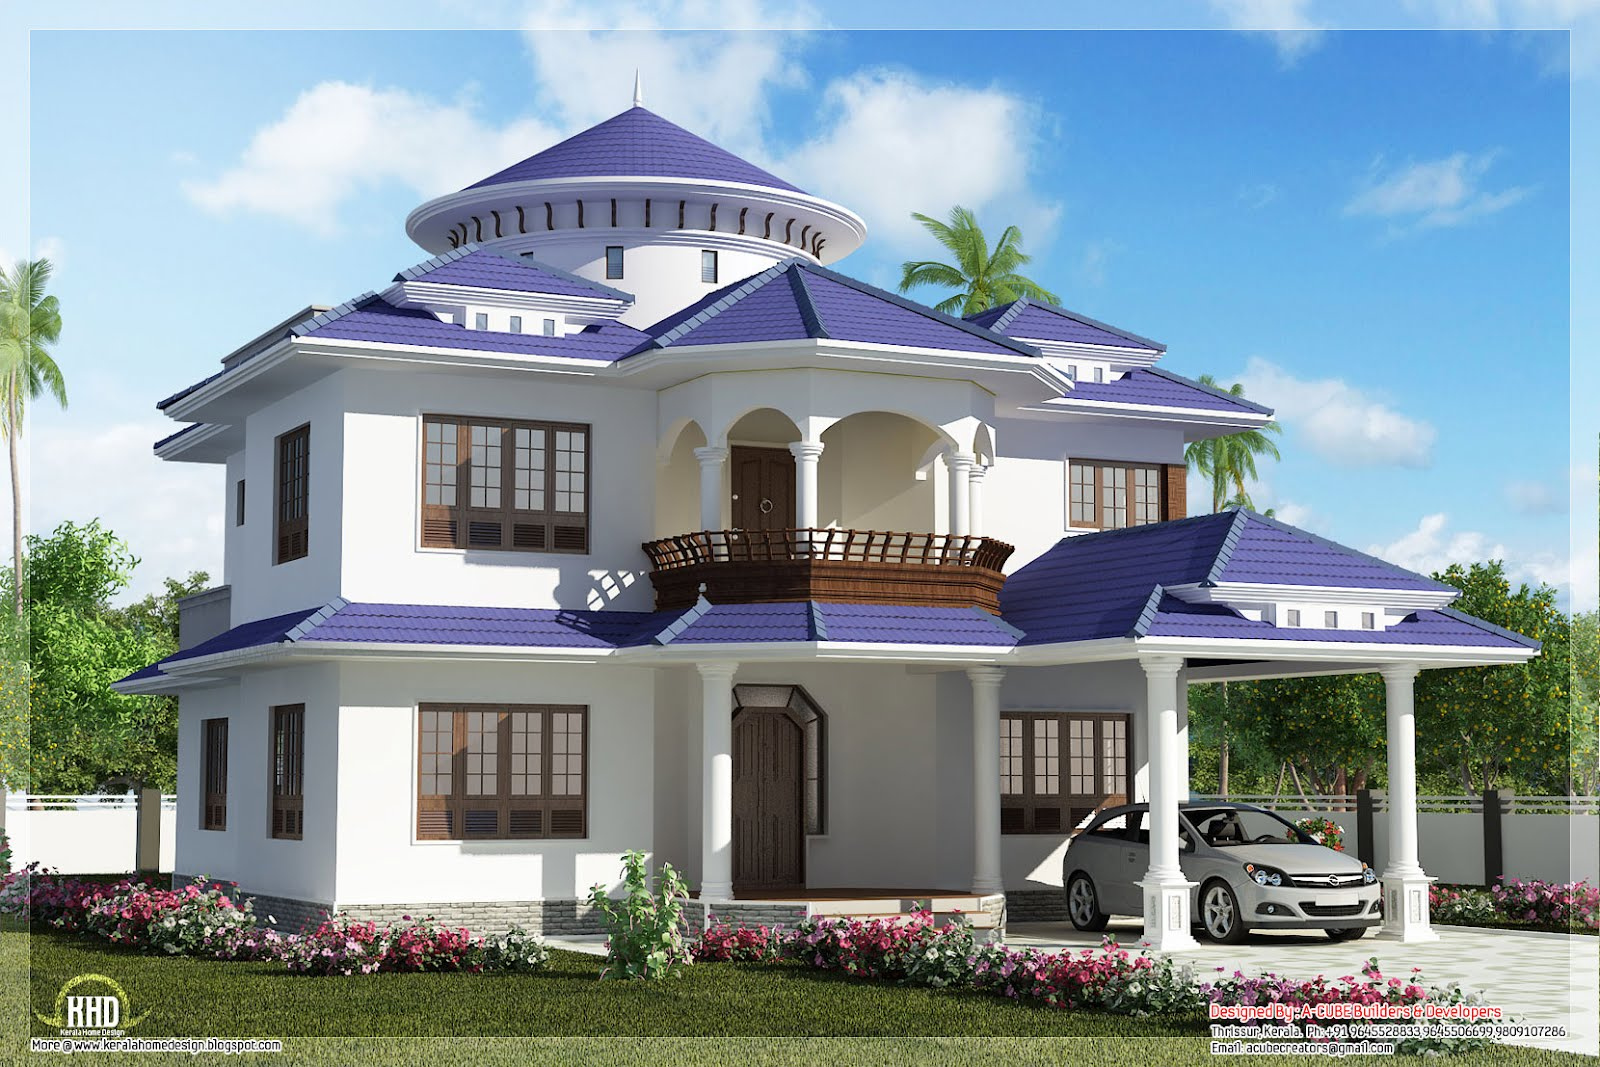 Interior exterior plan designing your dream home for Design your dream house